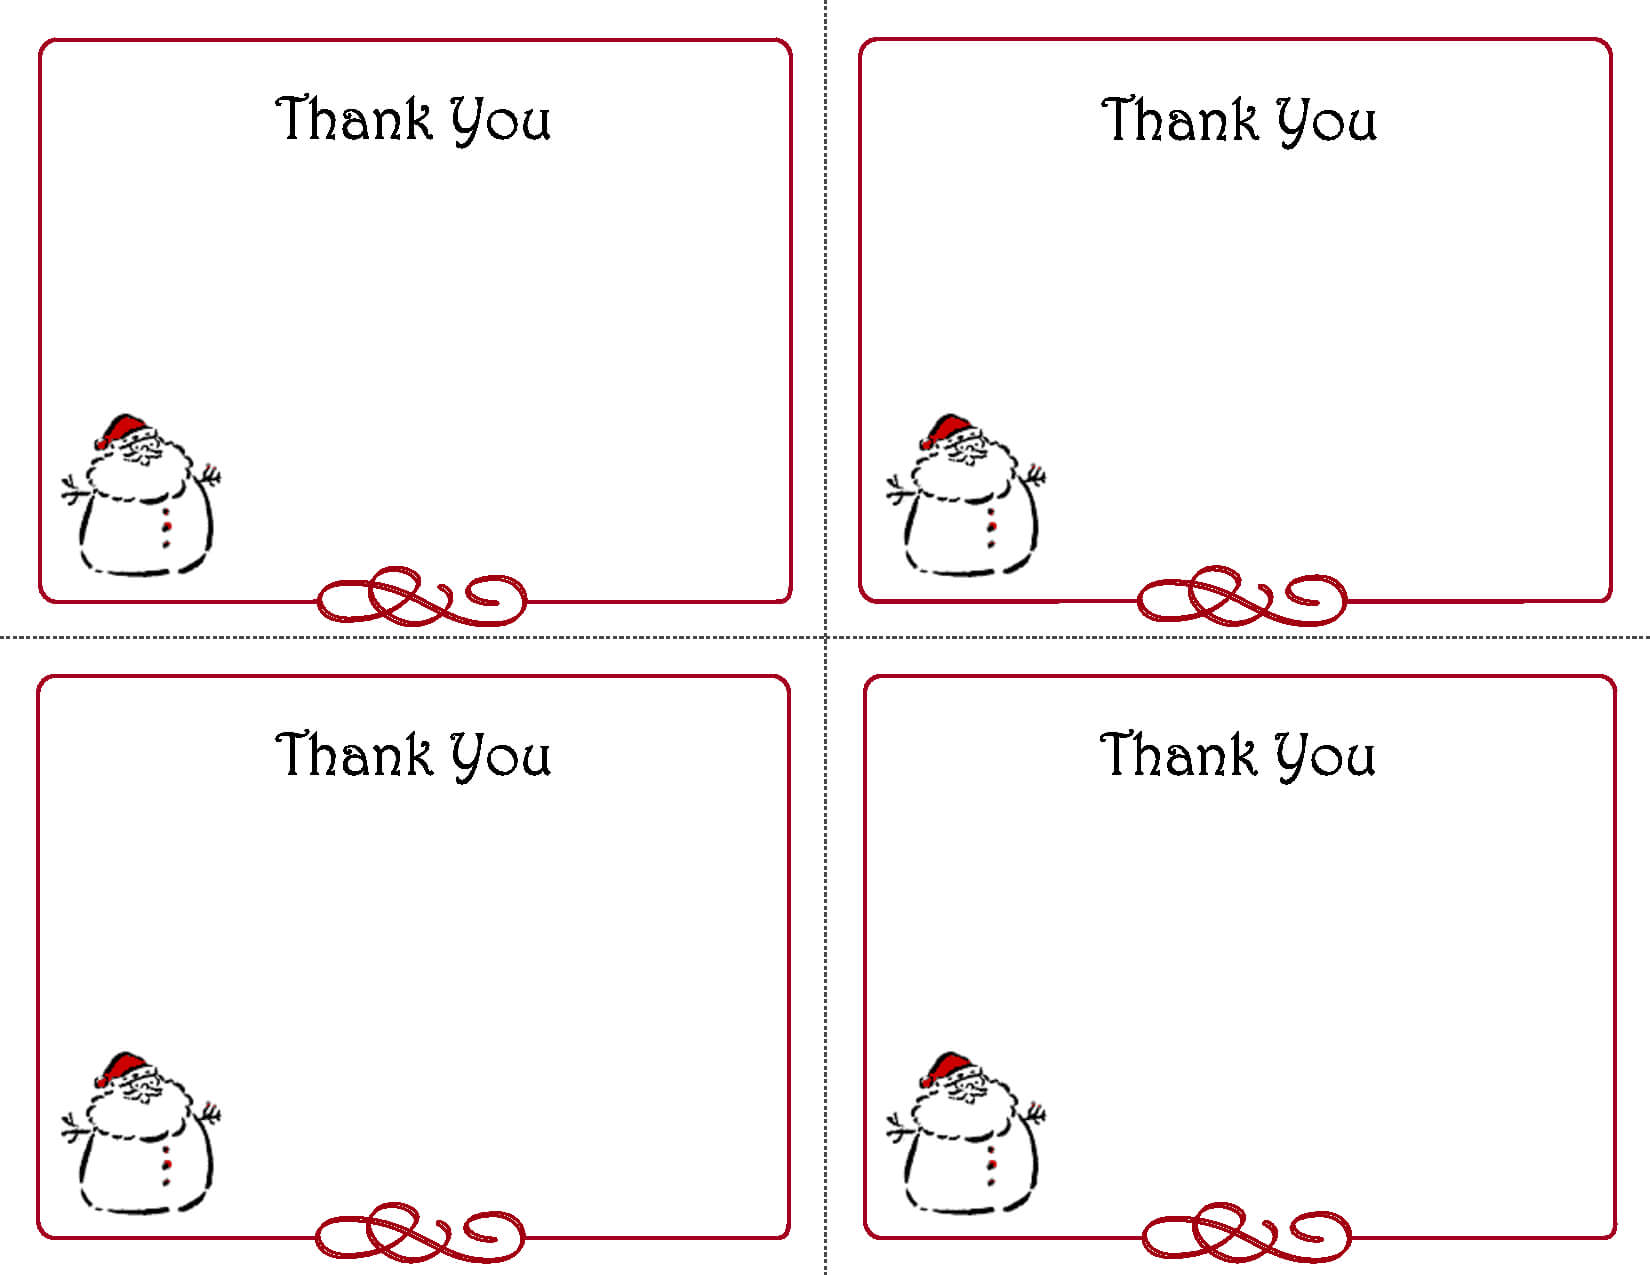 Free Thank You Cards Printable | Free Printable Holiday Gift Throughout Christmas Thank You Card Templates Free